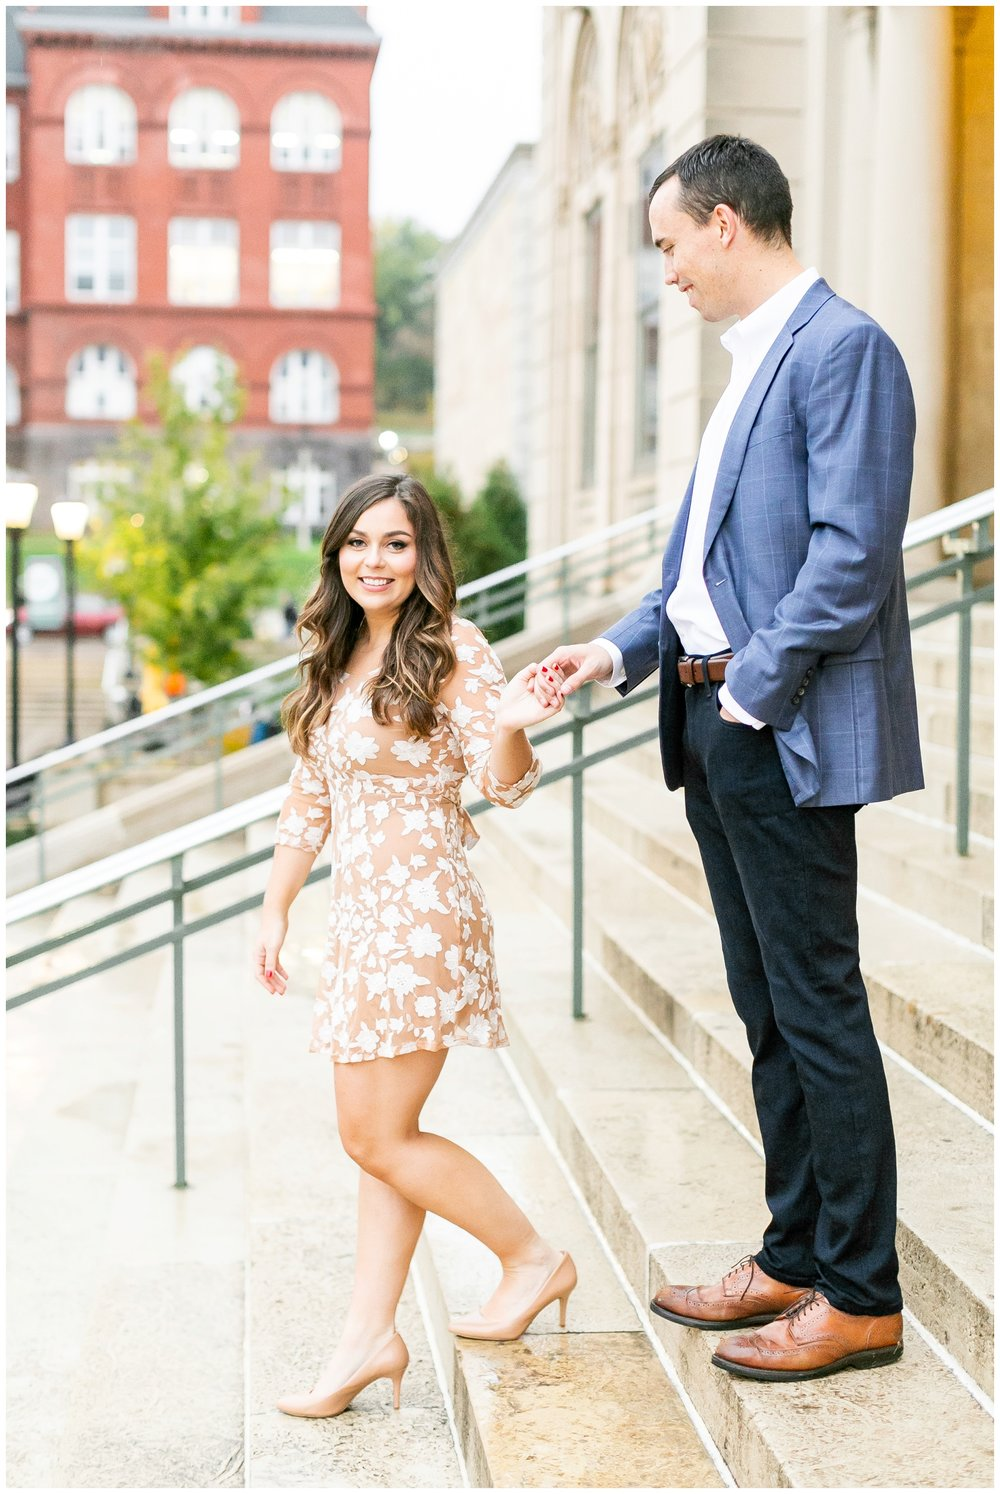 Memorial_Union_engagement_session_caynay_Photo_2222.jpg